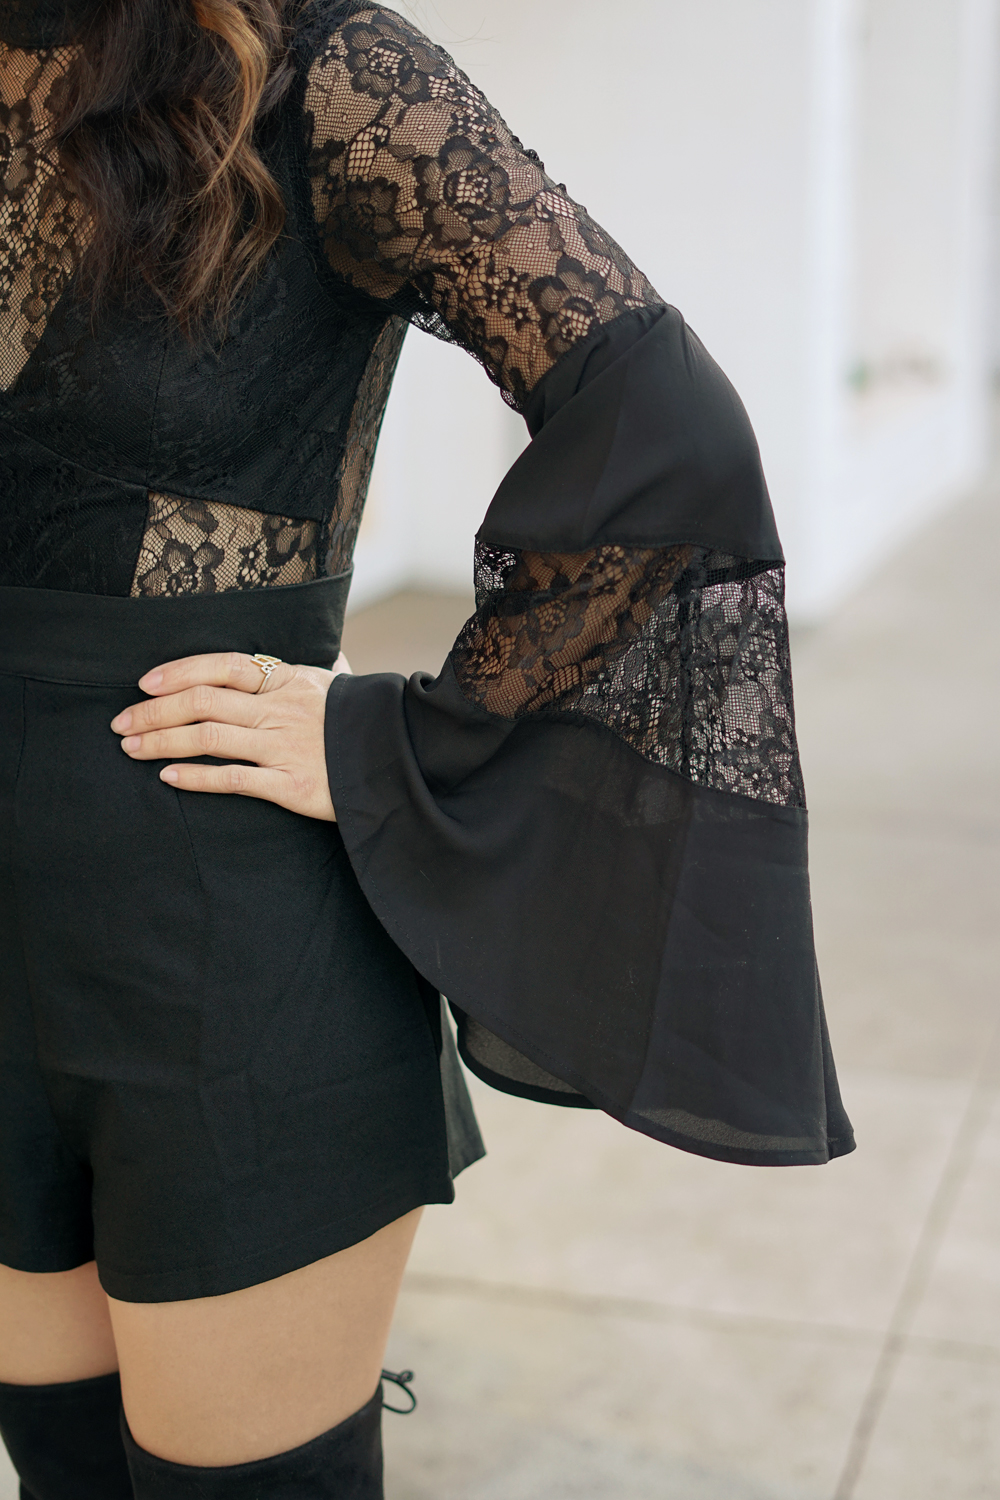 06black-lace-romper-melrose-fashion-ootd